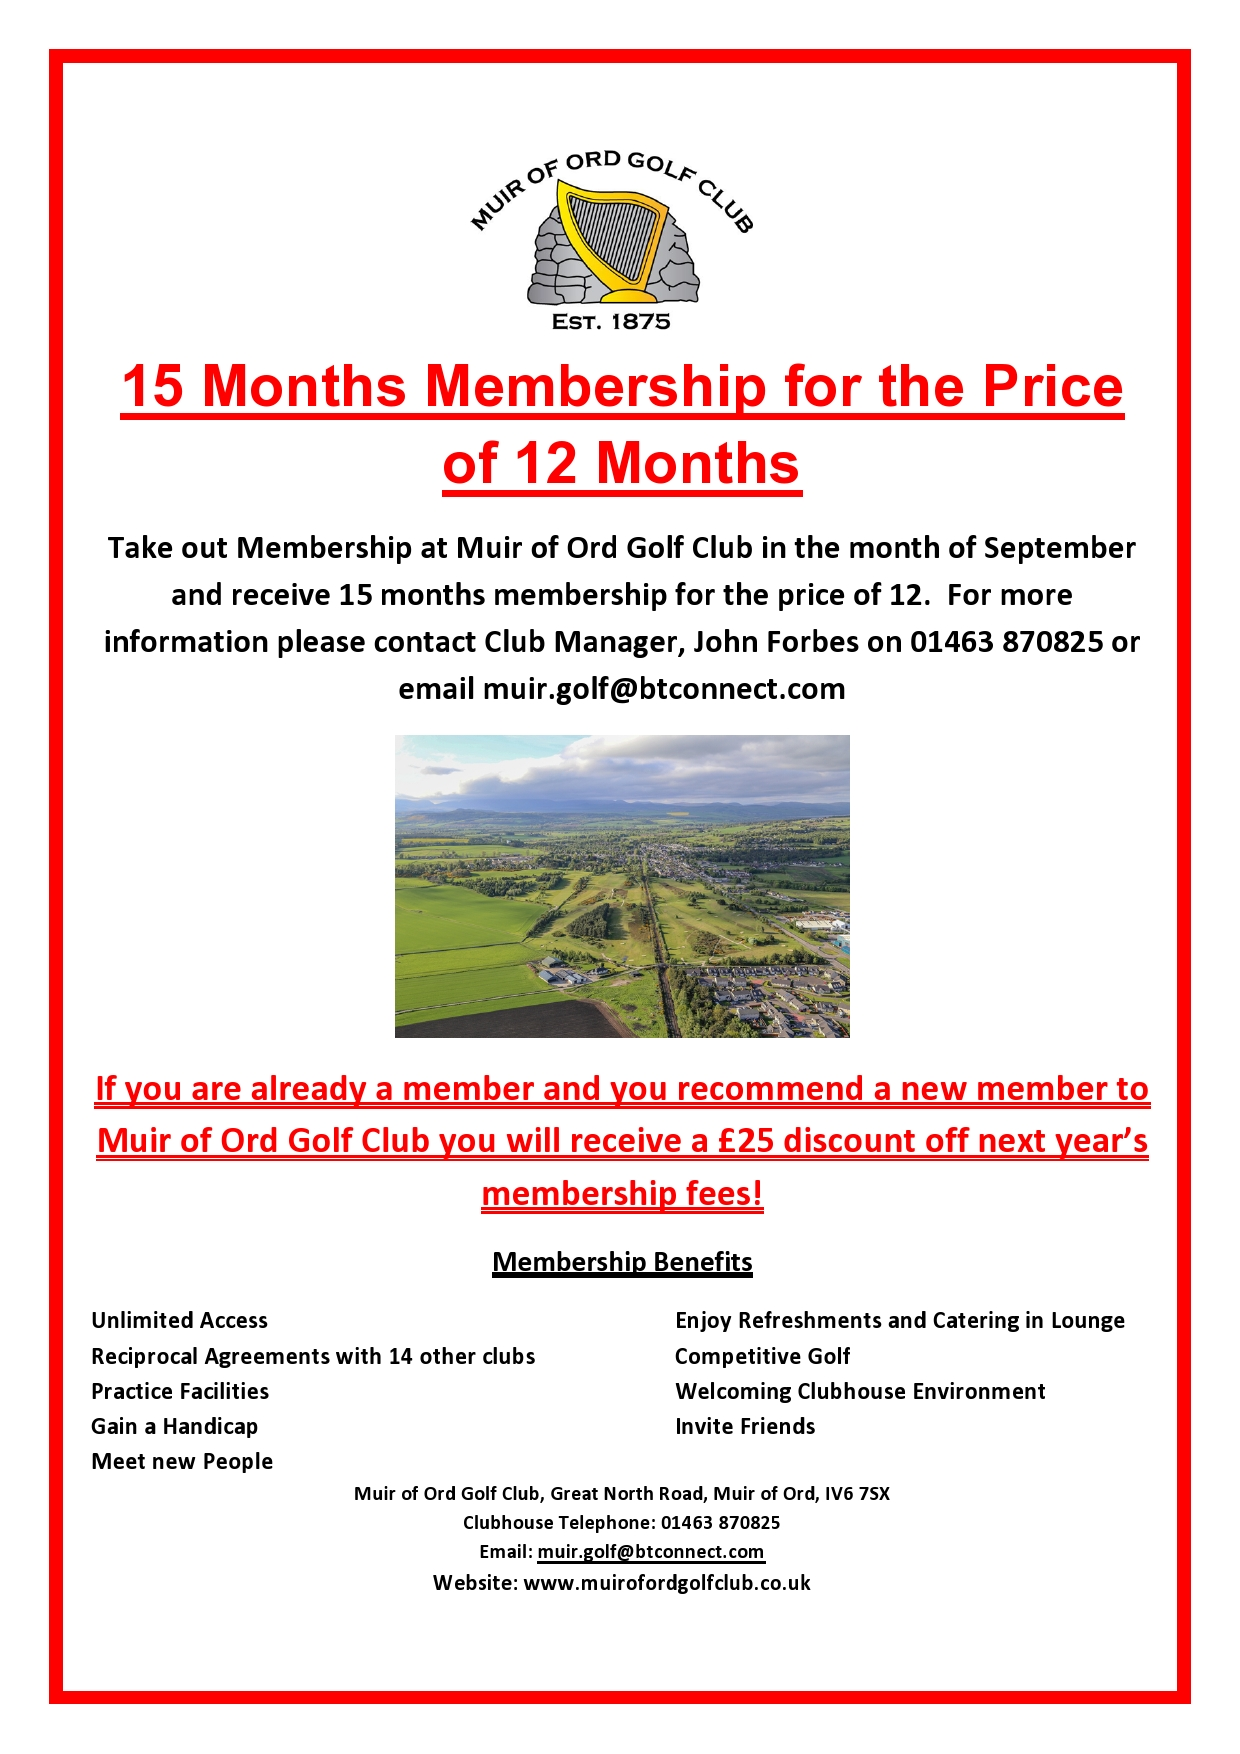 15 Months Membership for 12 Months Offer